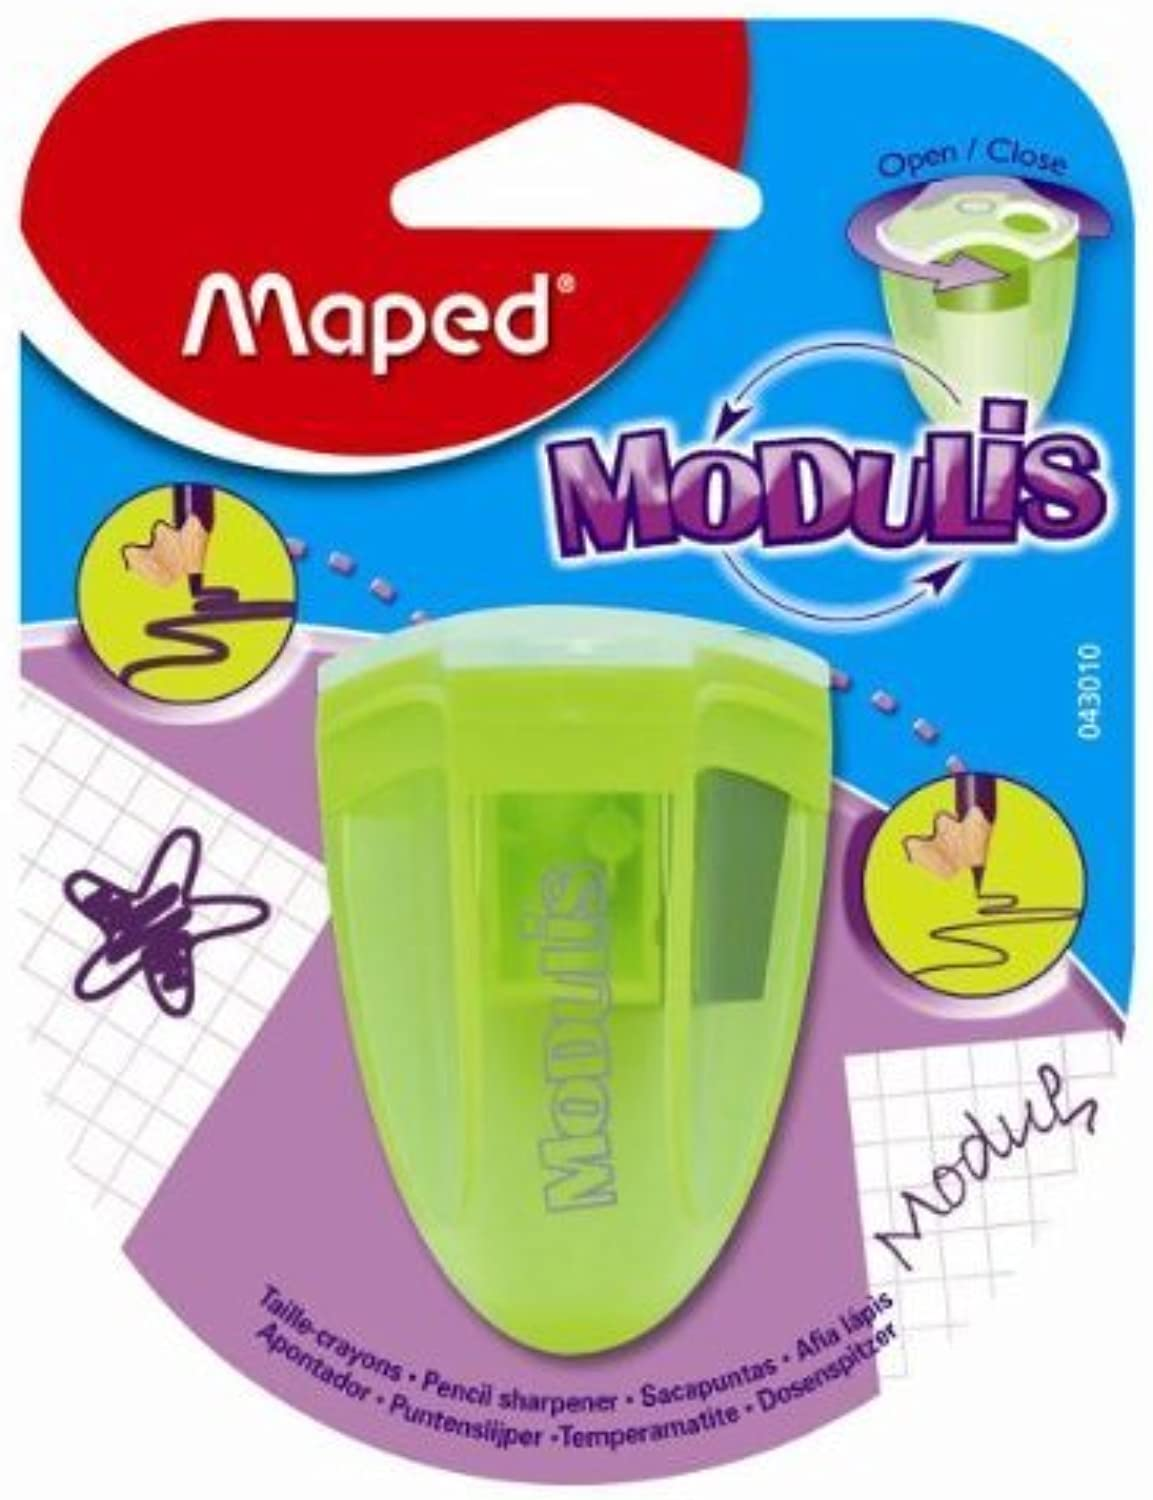 Maped Modulis 2-Hole Metal Pencil Sharpener, Produces Produces Produces Sharp or Rounded Point, Assorted Farbes (043010TA) by Maped B018OQDVBG | Die erste Reihe von umfassenden Spezifikationen für Kunden